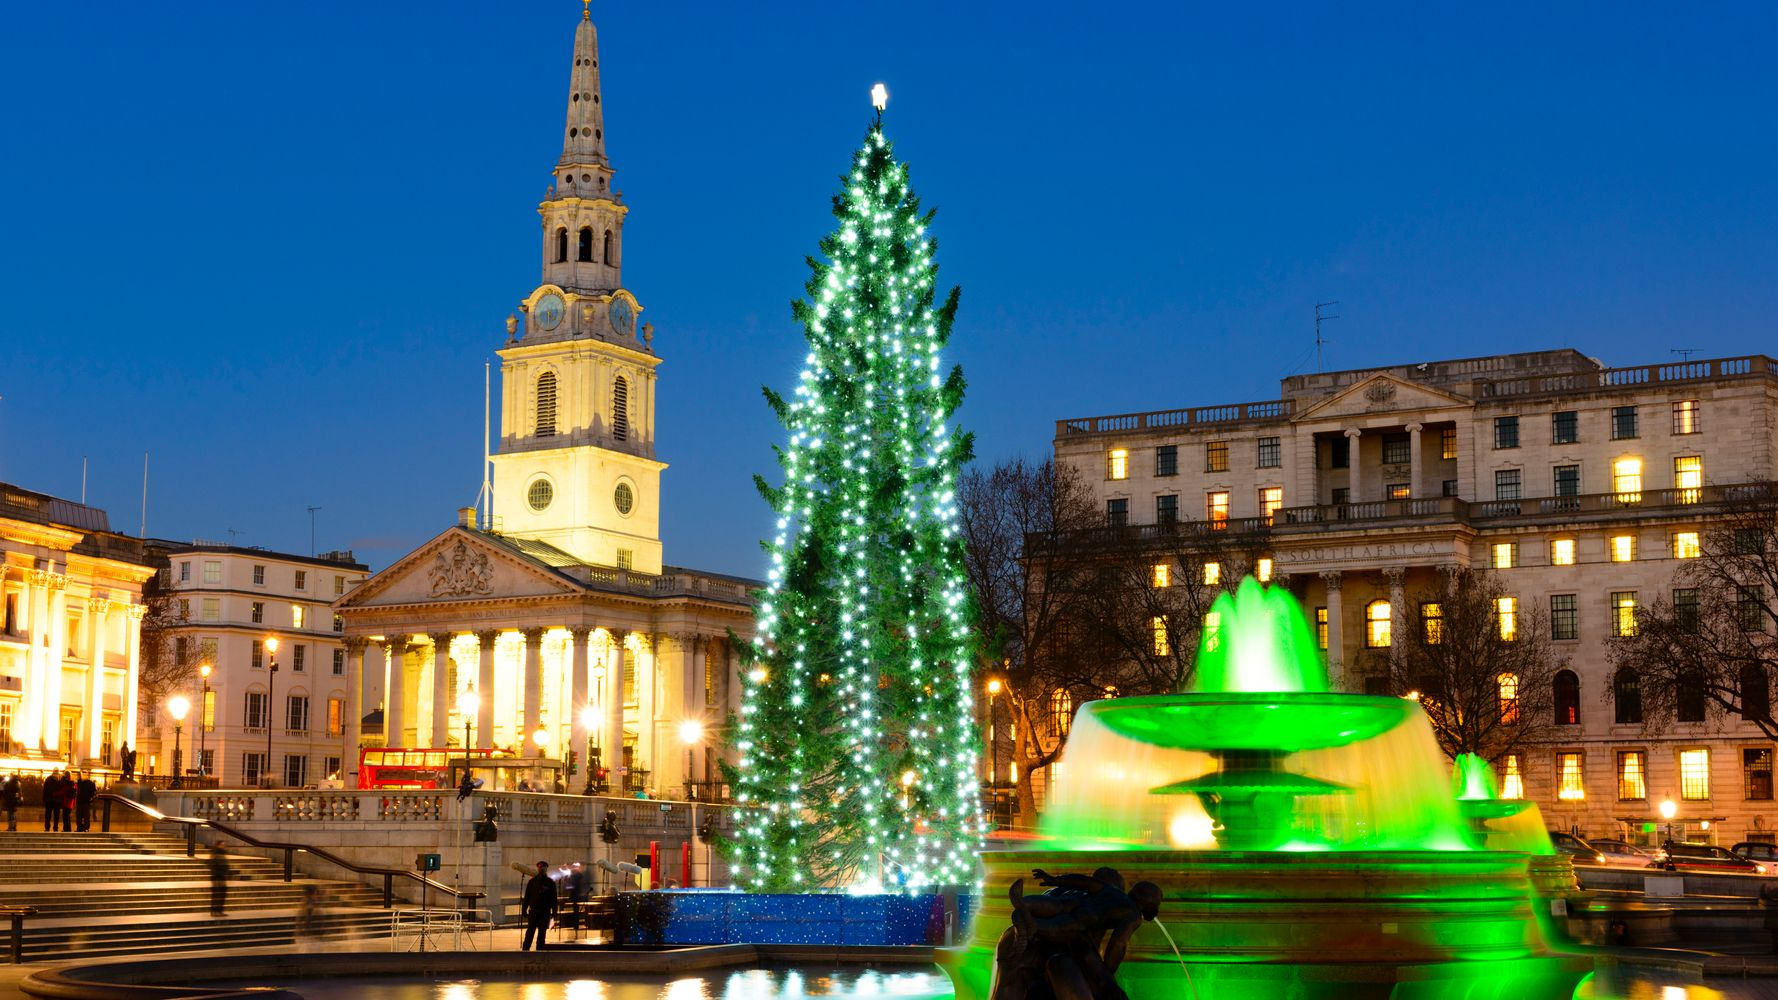 Londons Christmas Tree In Trafalgar Square Is Donated Each Year By Which Country.The Biggest And Best Christmas Trees Around The Uk